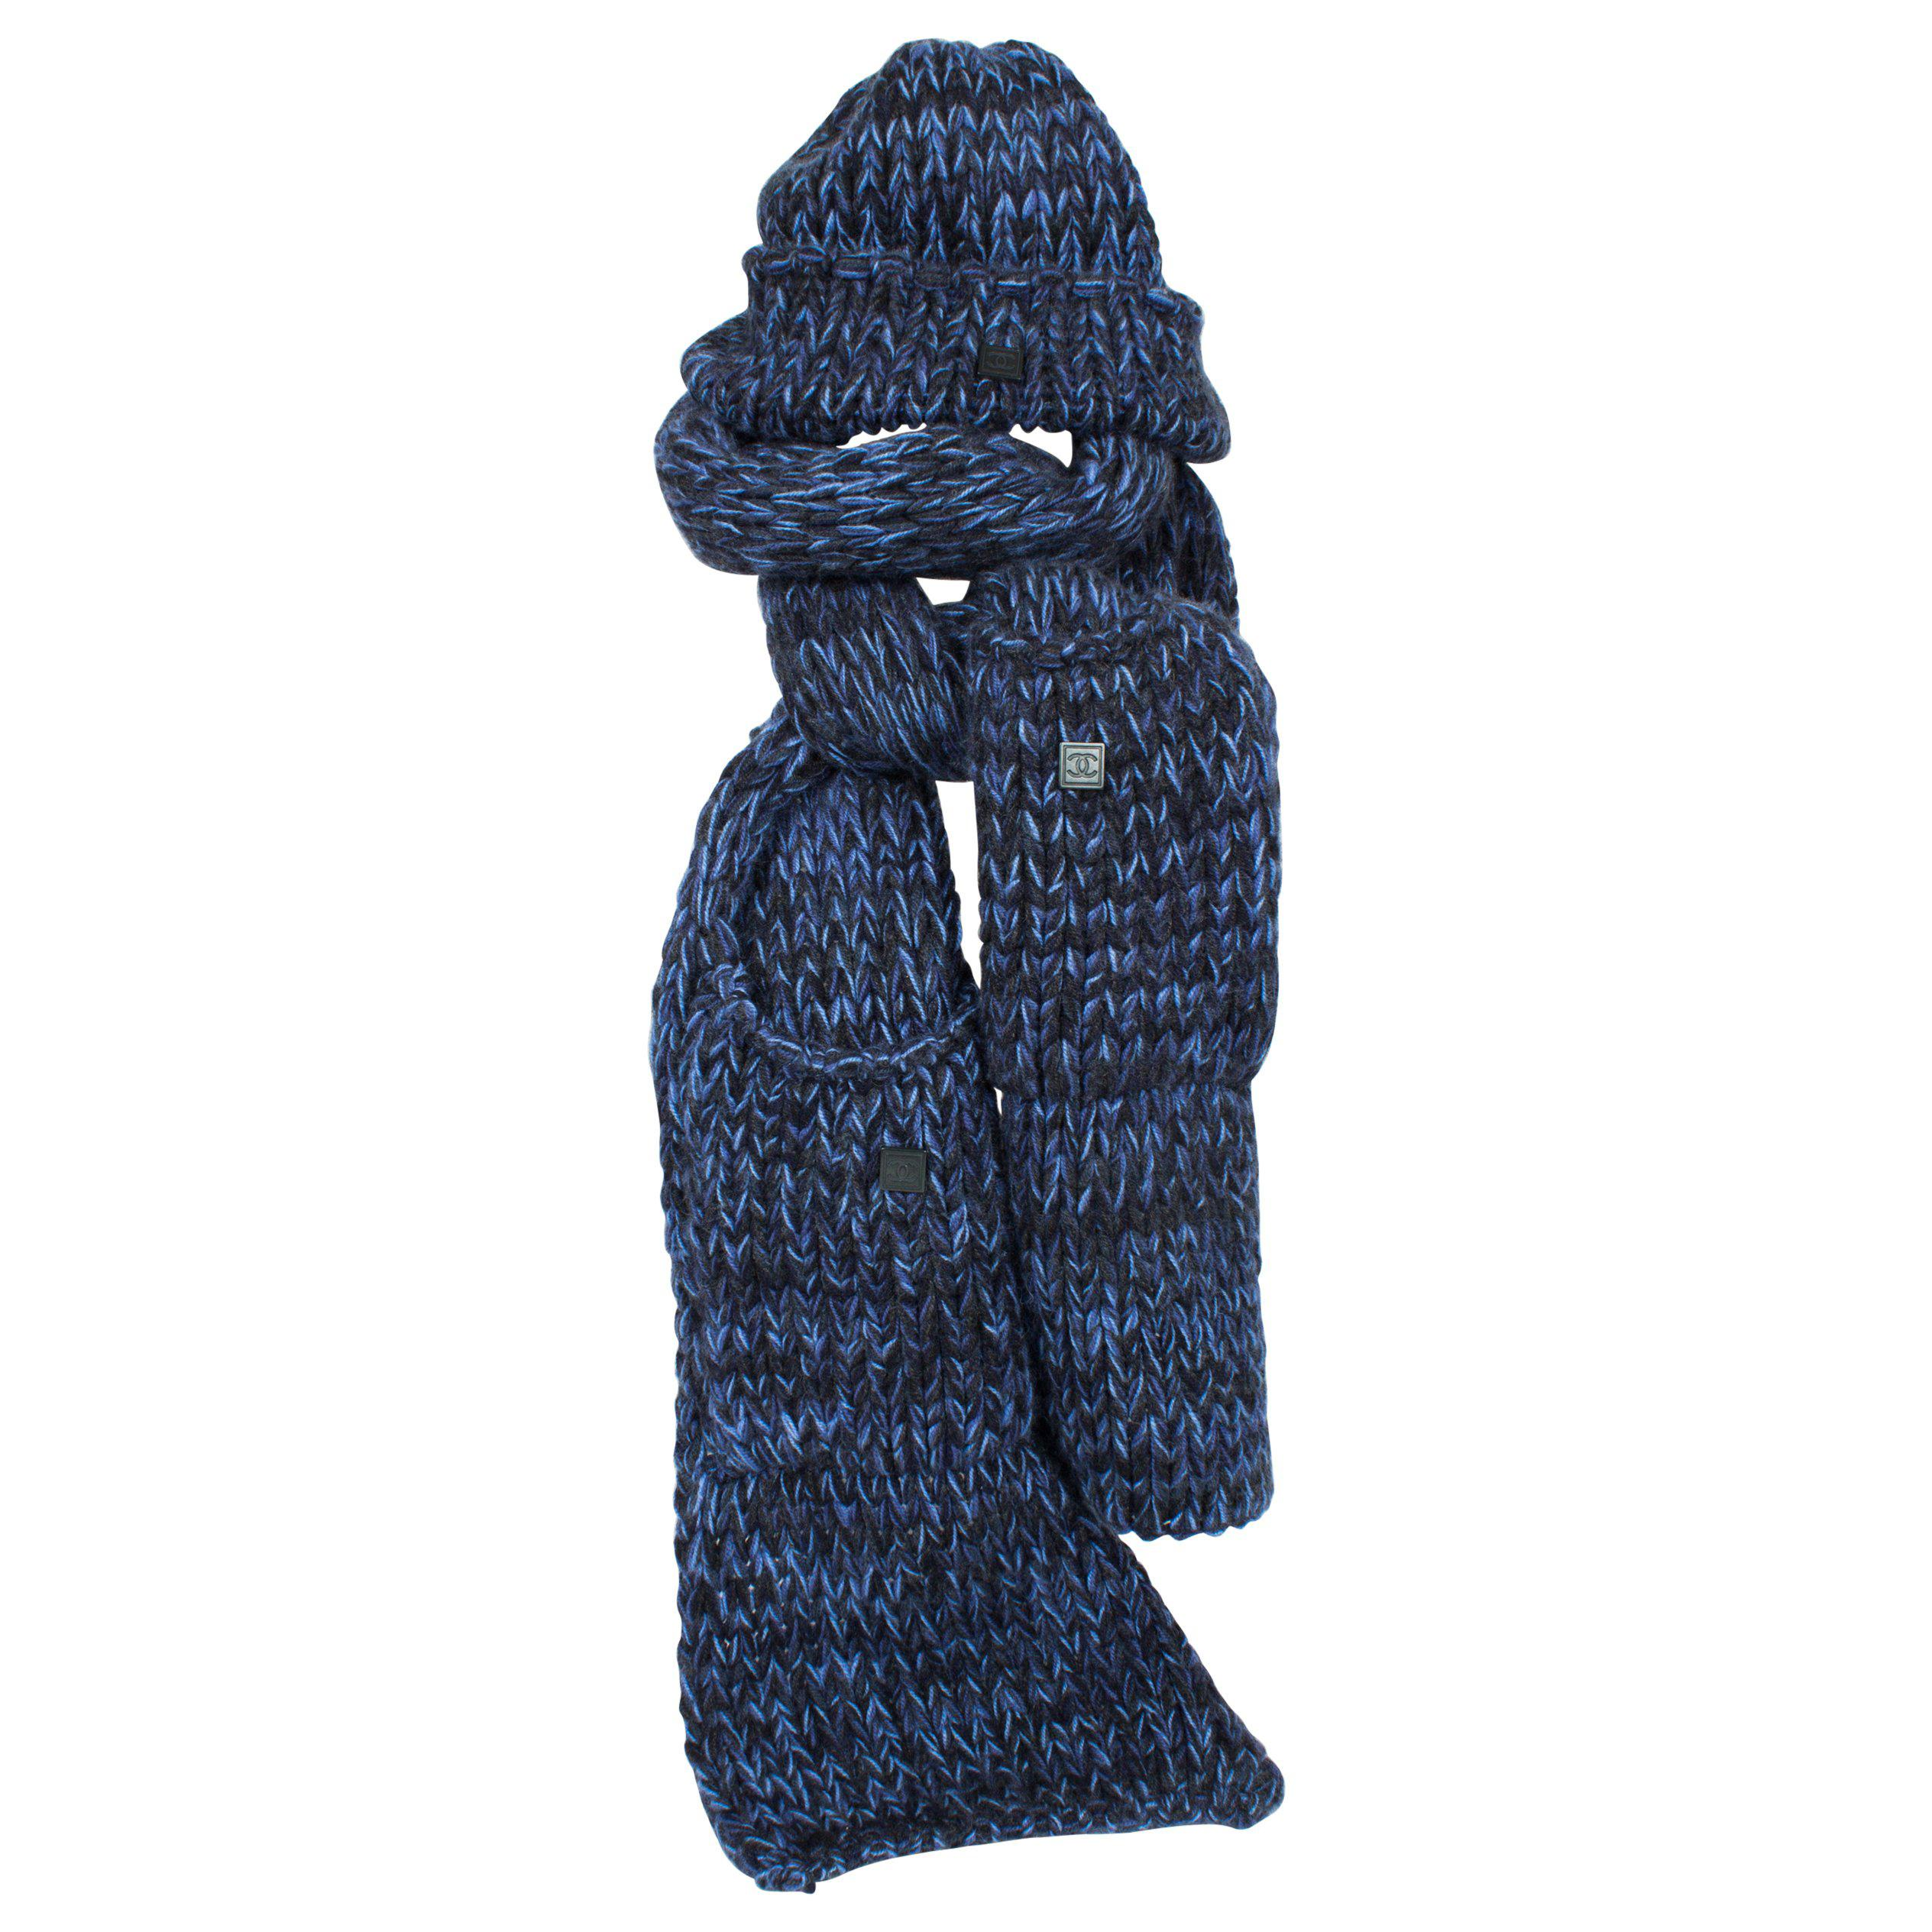 f2d1bb9326d Chanel Knit Hat and Scarf - black blue cashmere For Sale at 1stdibs